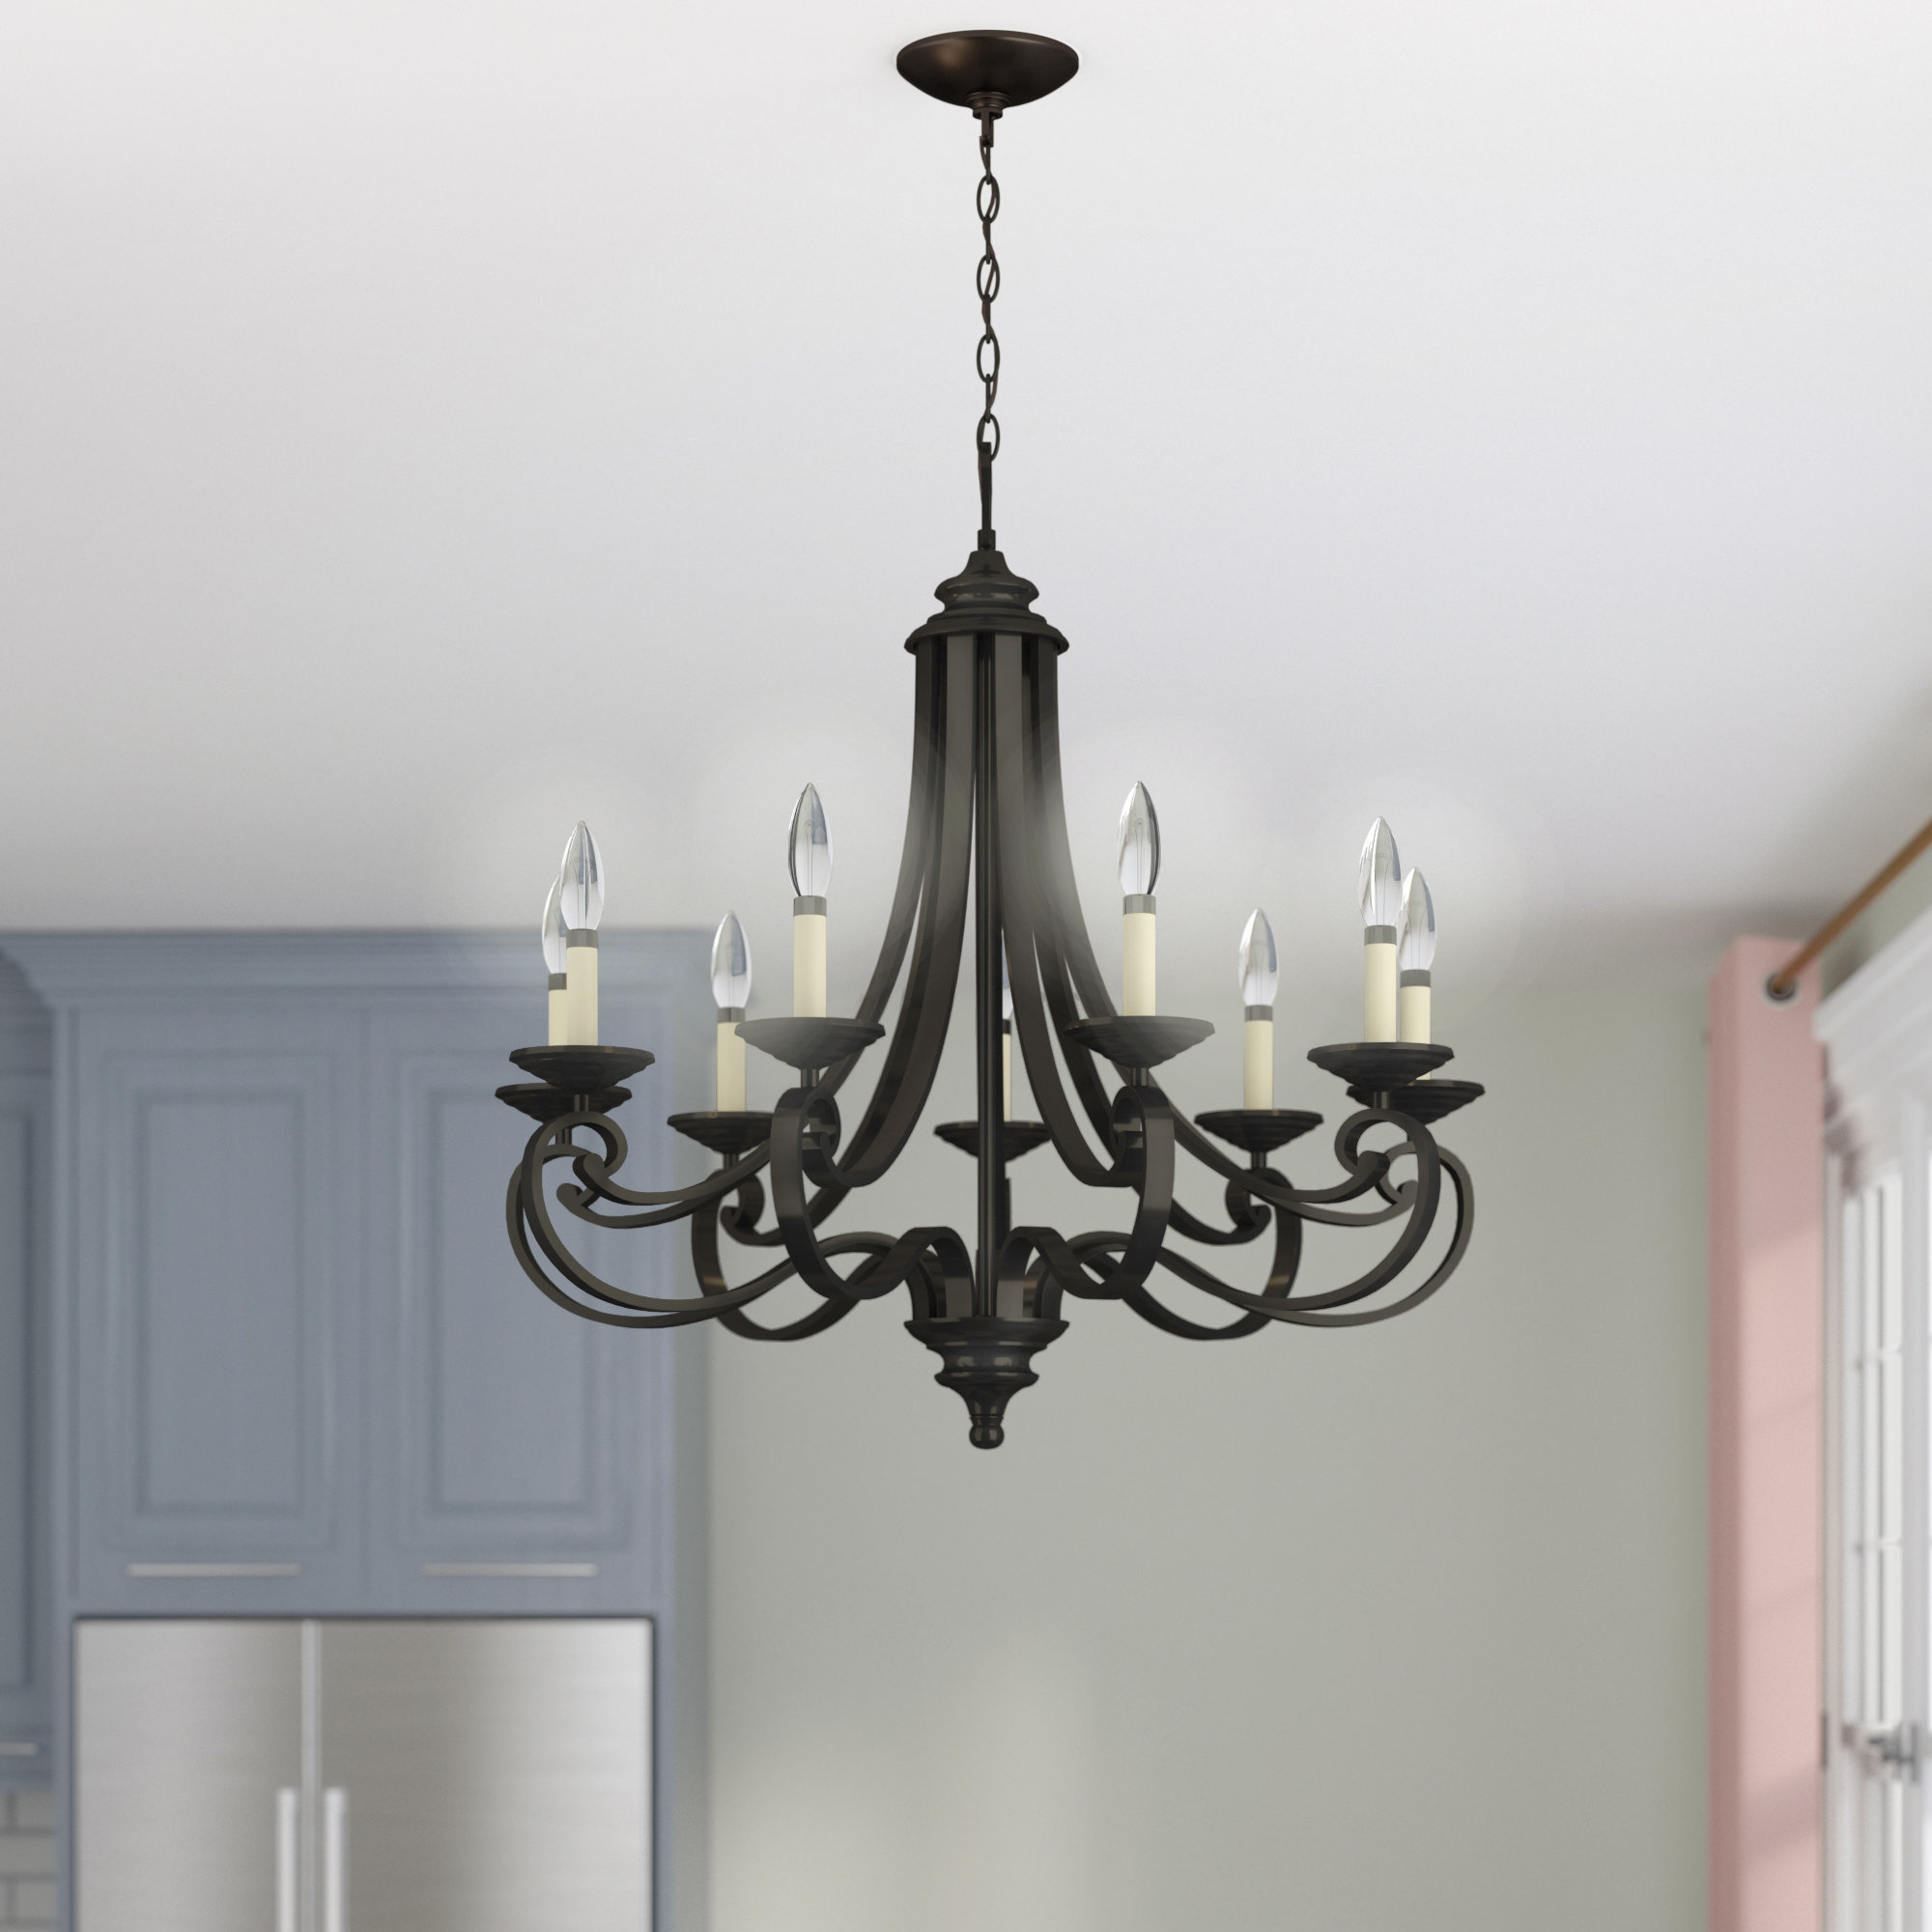 Mcknight 9 Light Chandelier | Wayfair in Mcknight 9-Light Chandeliers (Image 19 of 30)